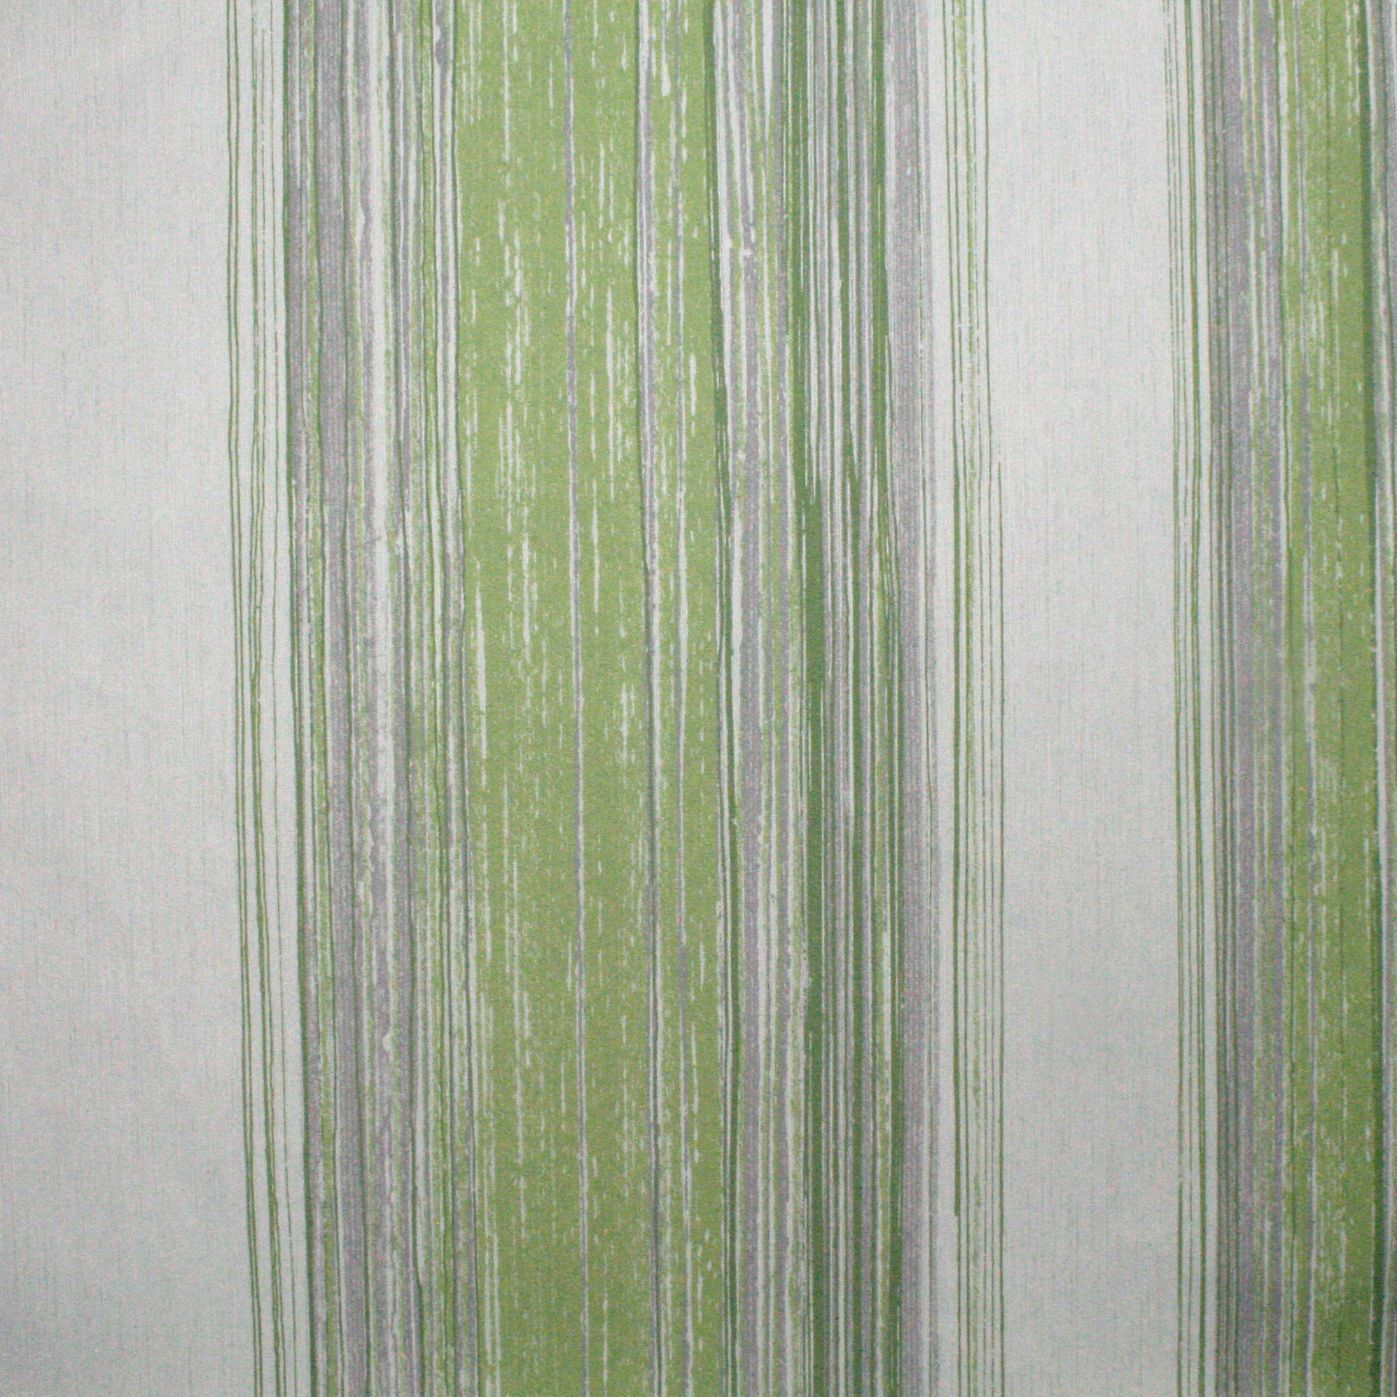 Superfresco Easy PASTE THE WALL Twine Pear Green Stripe Wallpaper